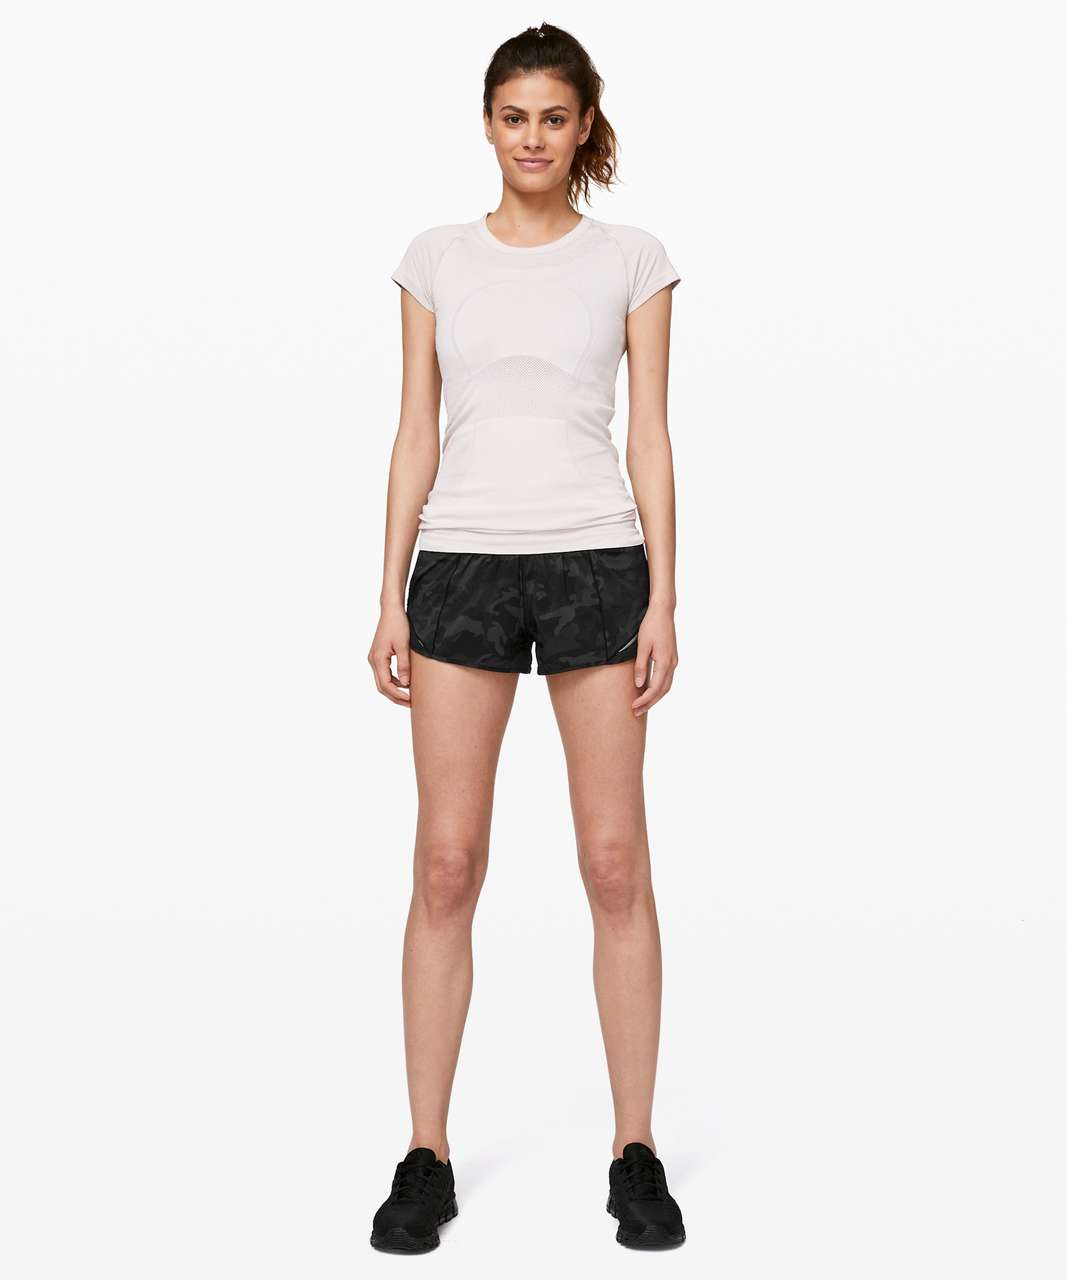 "Lululemon Hotty Hot Short II *2.5"" - Incognito Camo Multi Grey / Black"